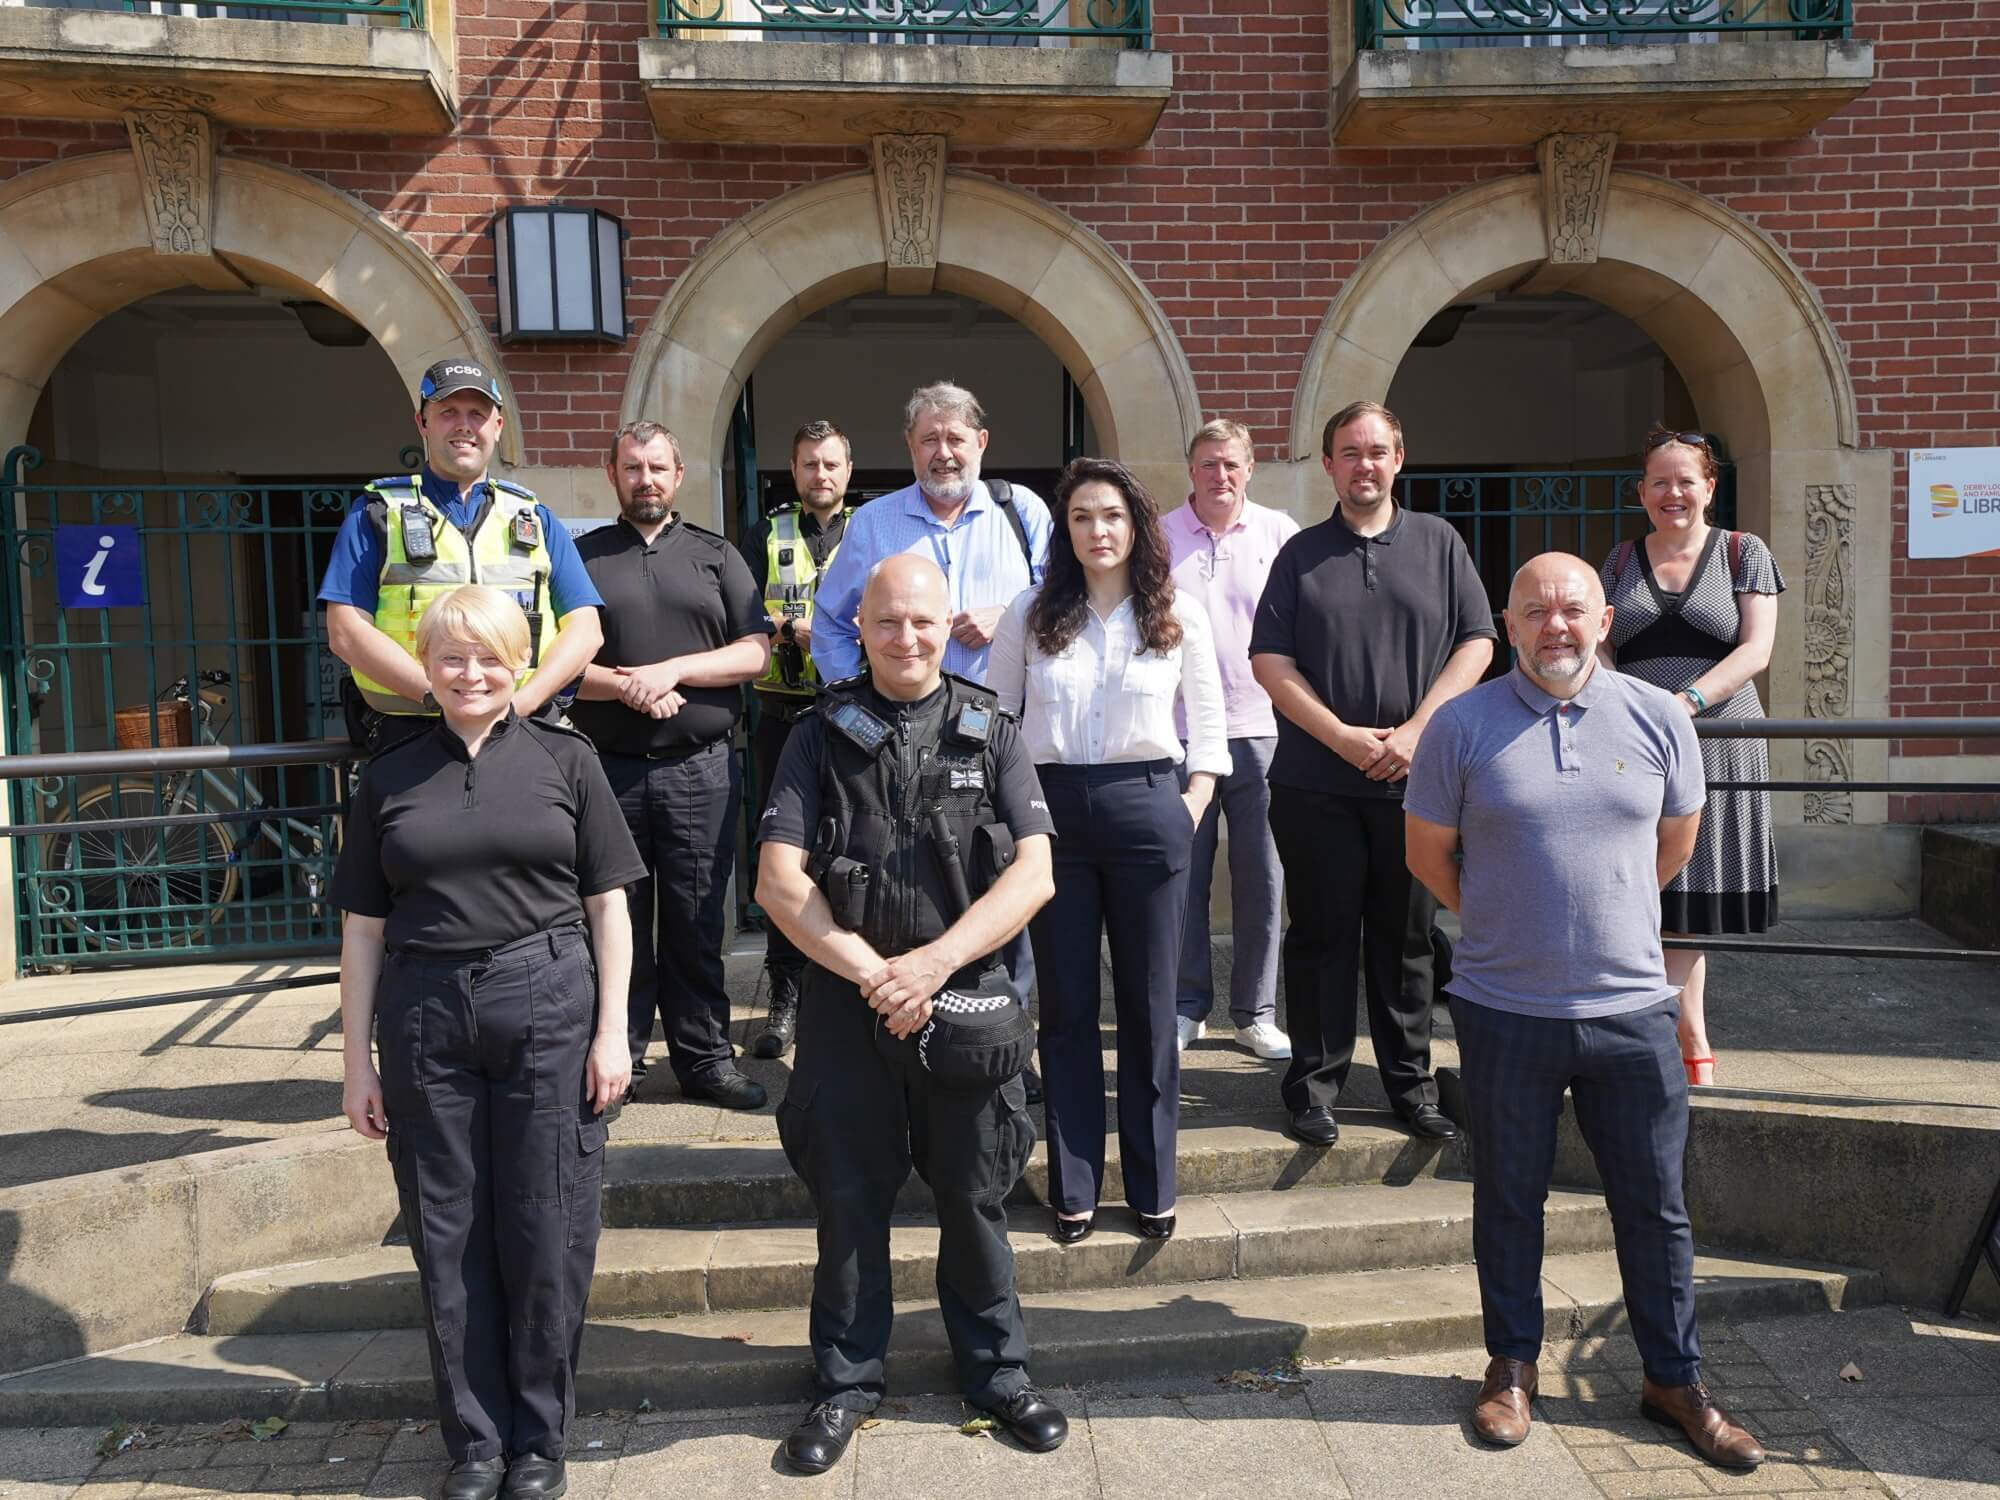 representatives of partner organisations outside the new joint enforcement hub in Derby city centre (July 2021)